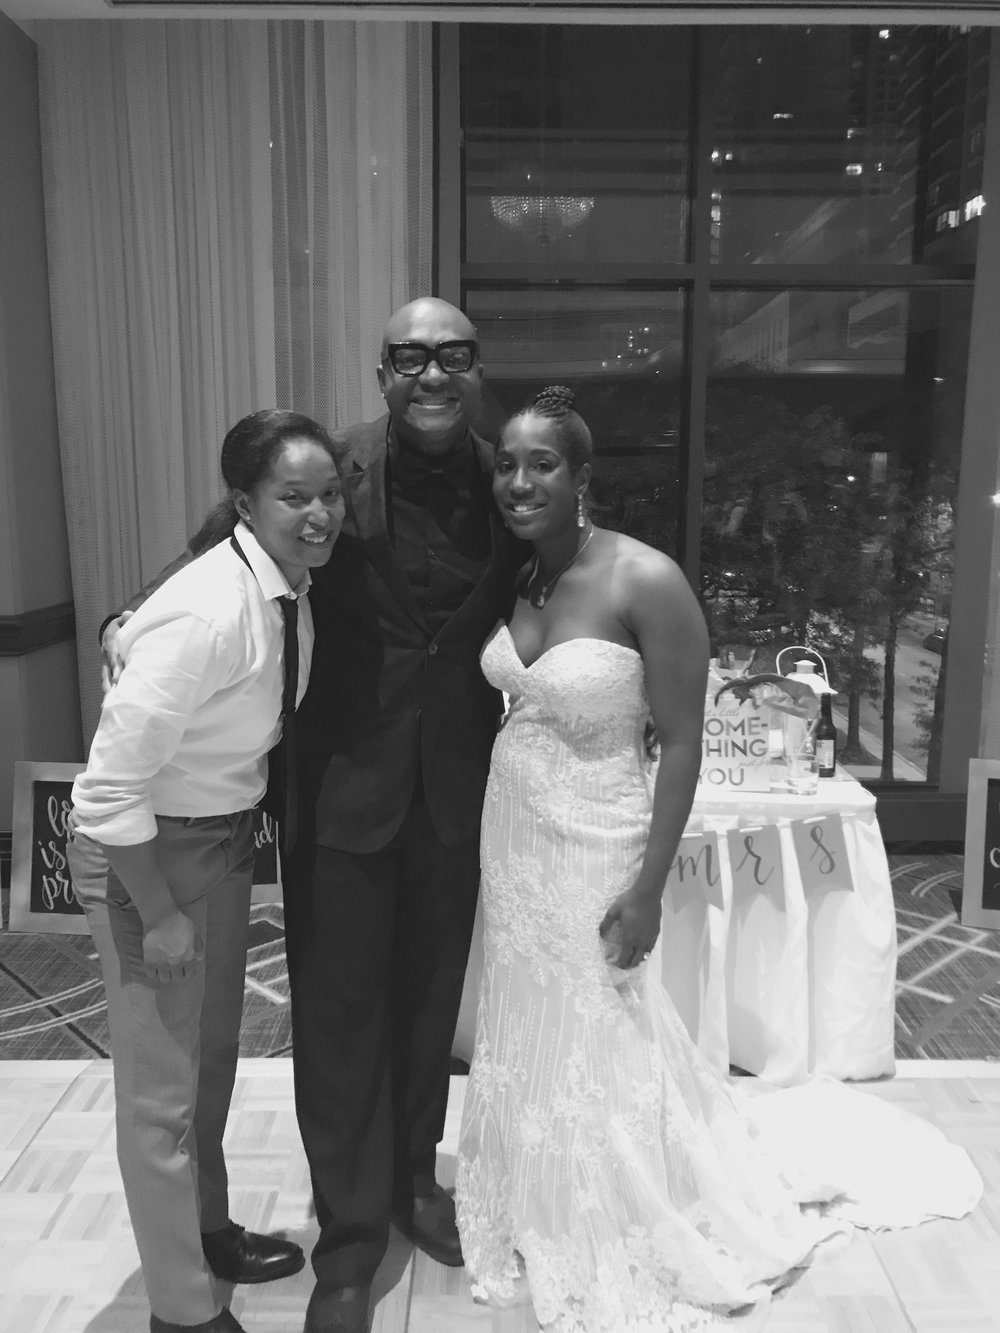 ford blasingame Wedding by dj d jones omni hotel chicago LGBT.jpg